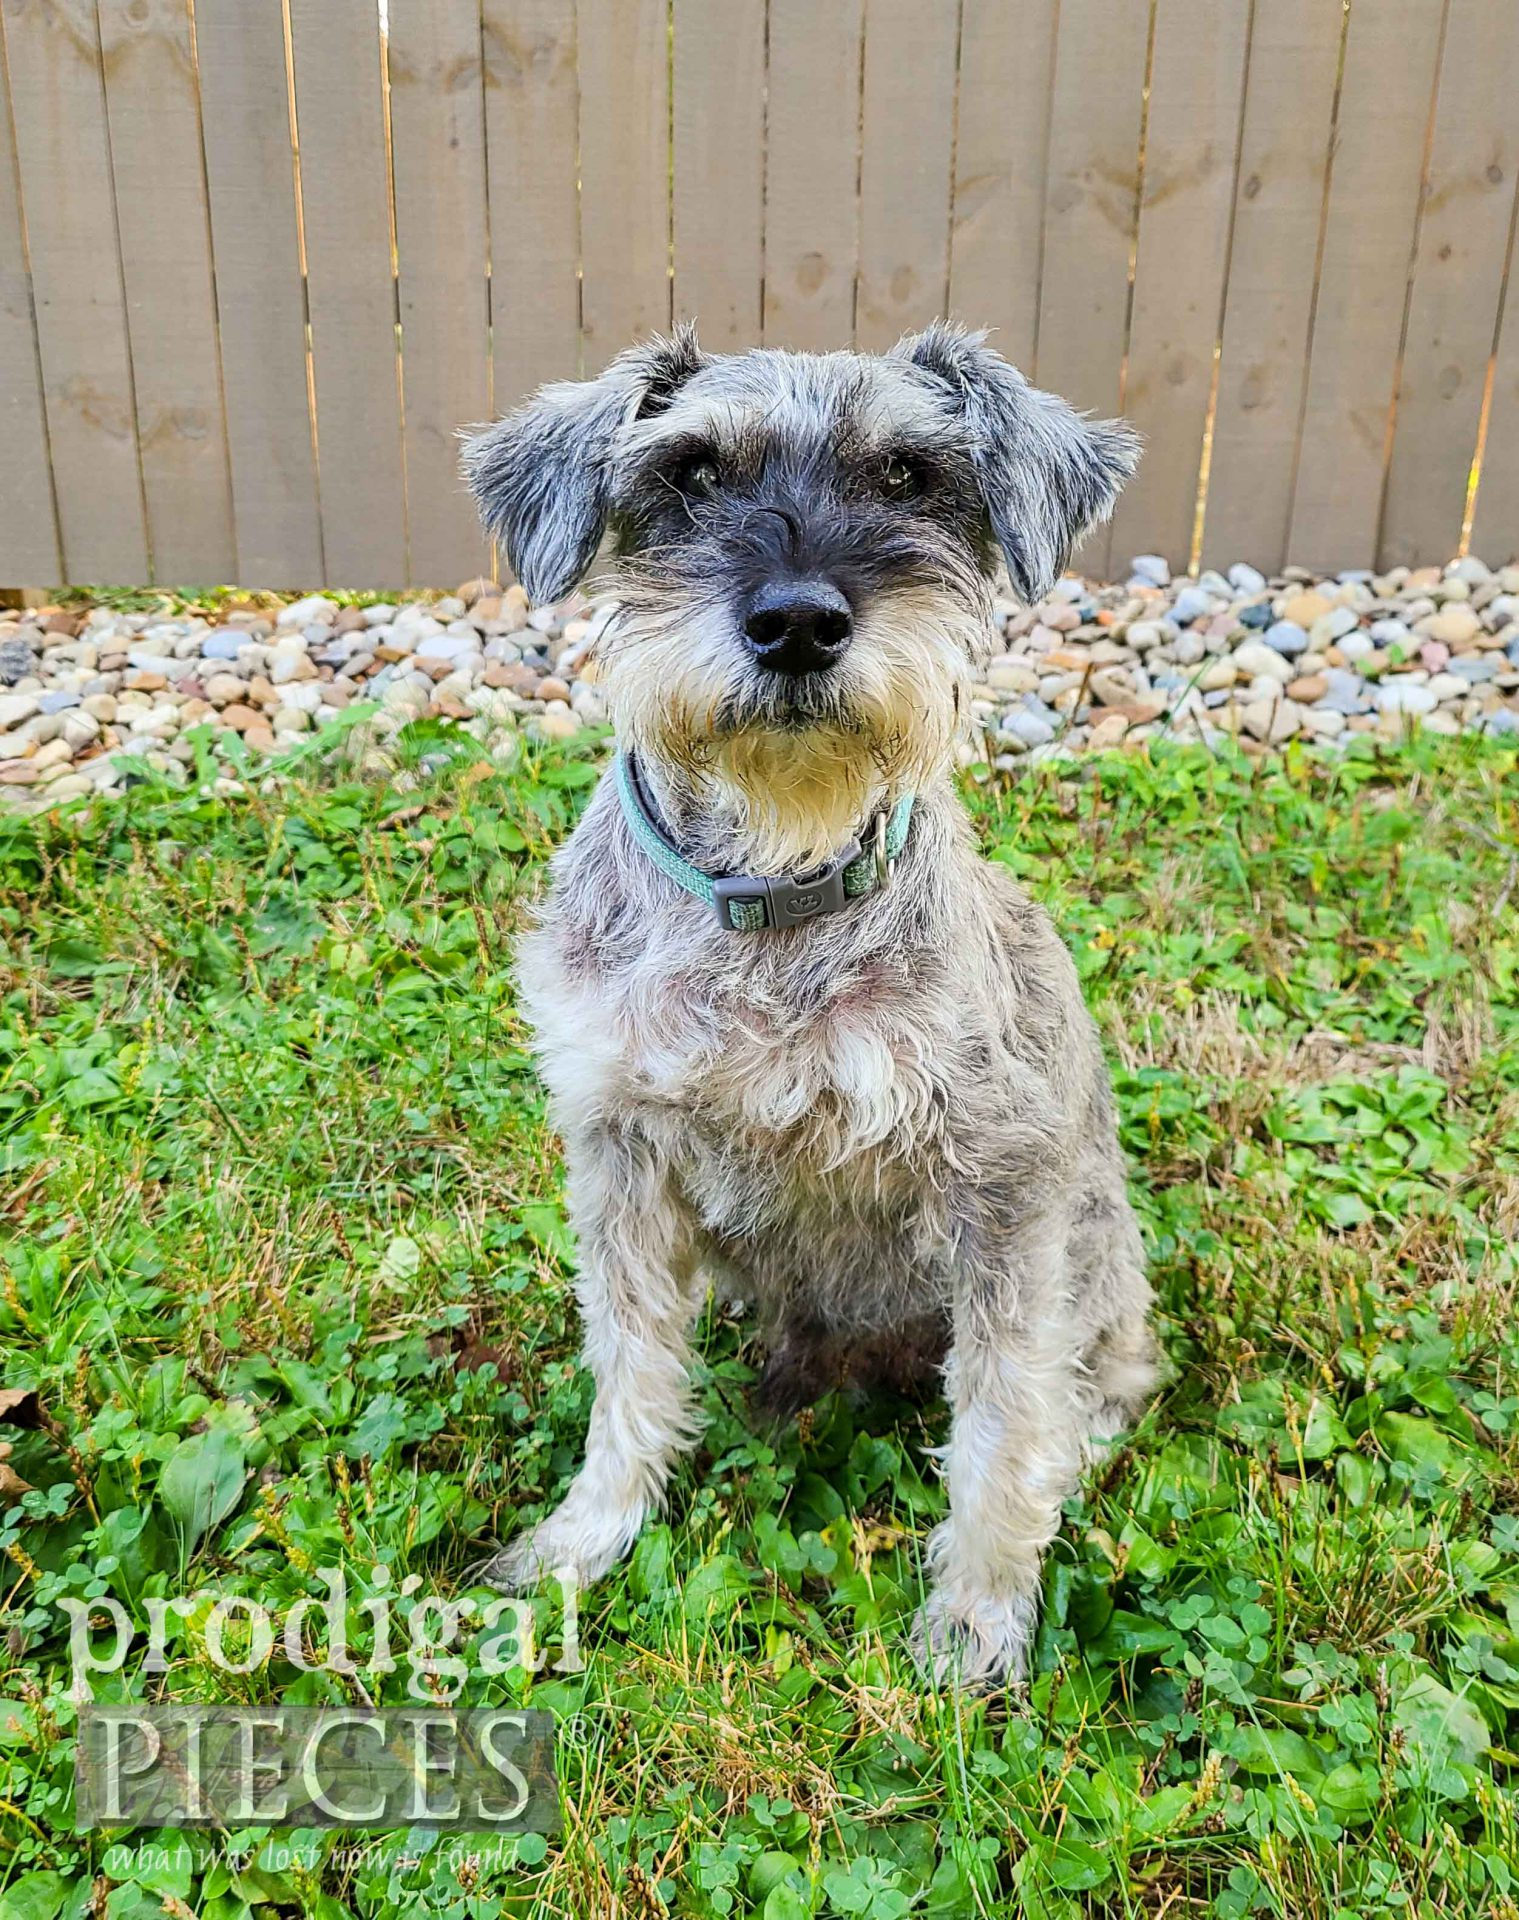 Teddy, Prodigal Pieces Miniature Schnauzer | prodigalpieces.com